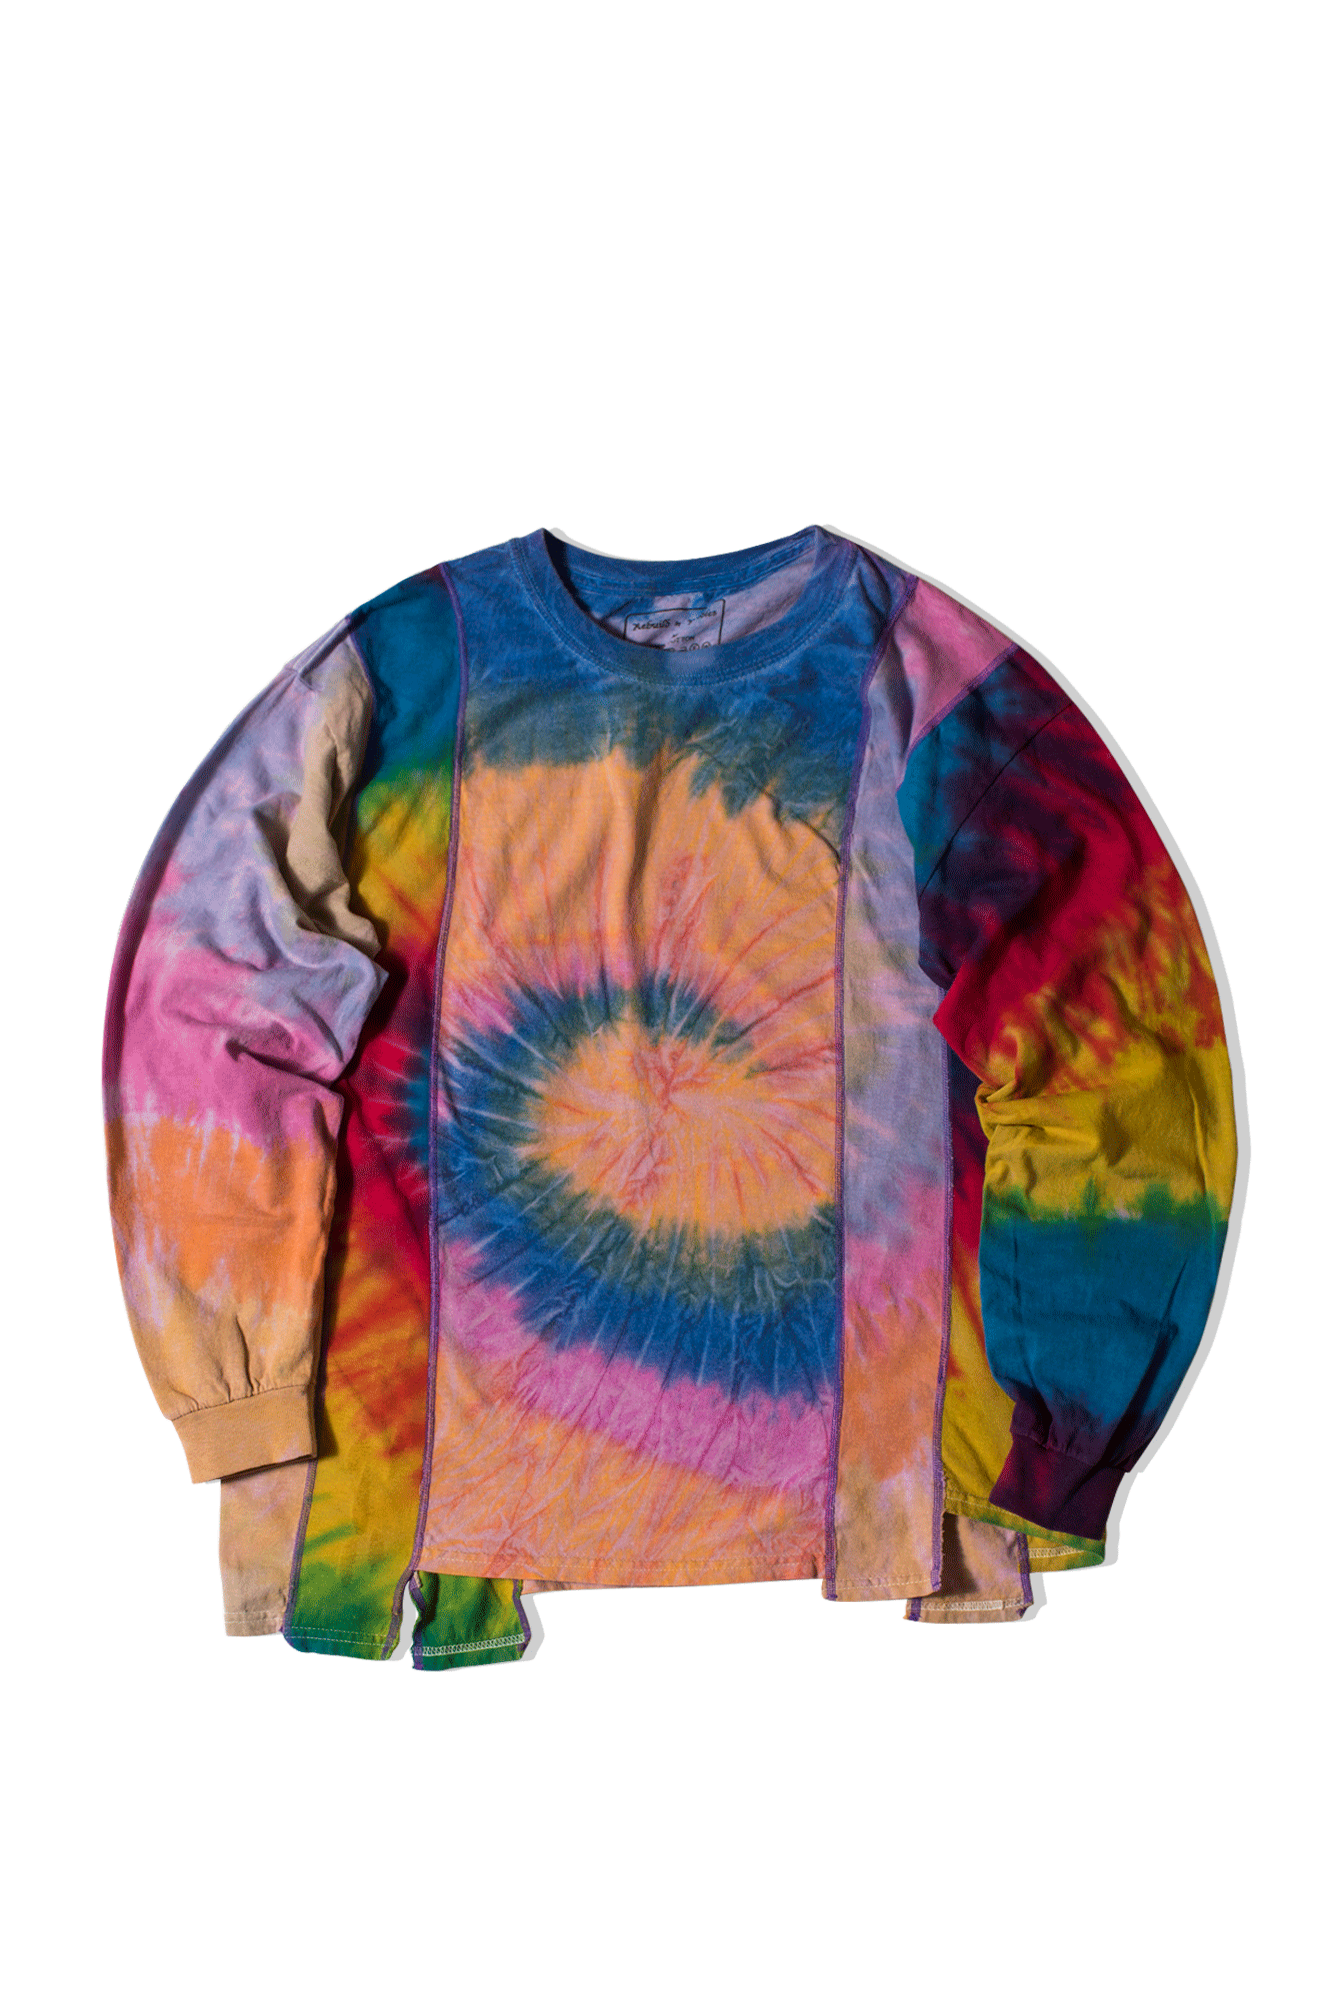 Needles Long sleeve T-Shirts Tie Dye 5 Cut LongSleeve T-Shirt Multicolor IN251#000#MLT#S - One Block Down